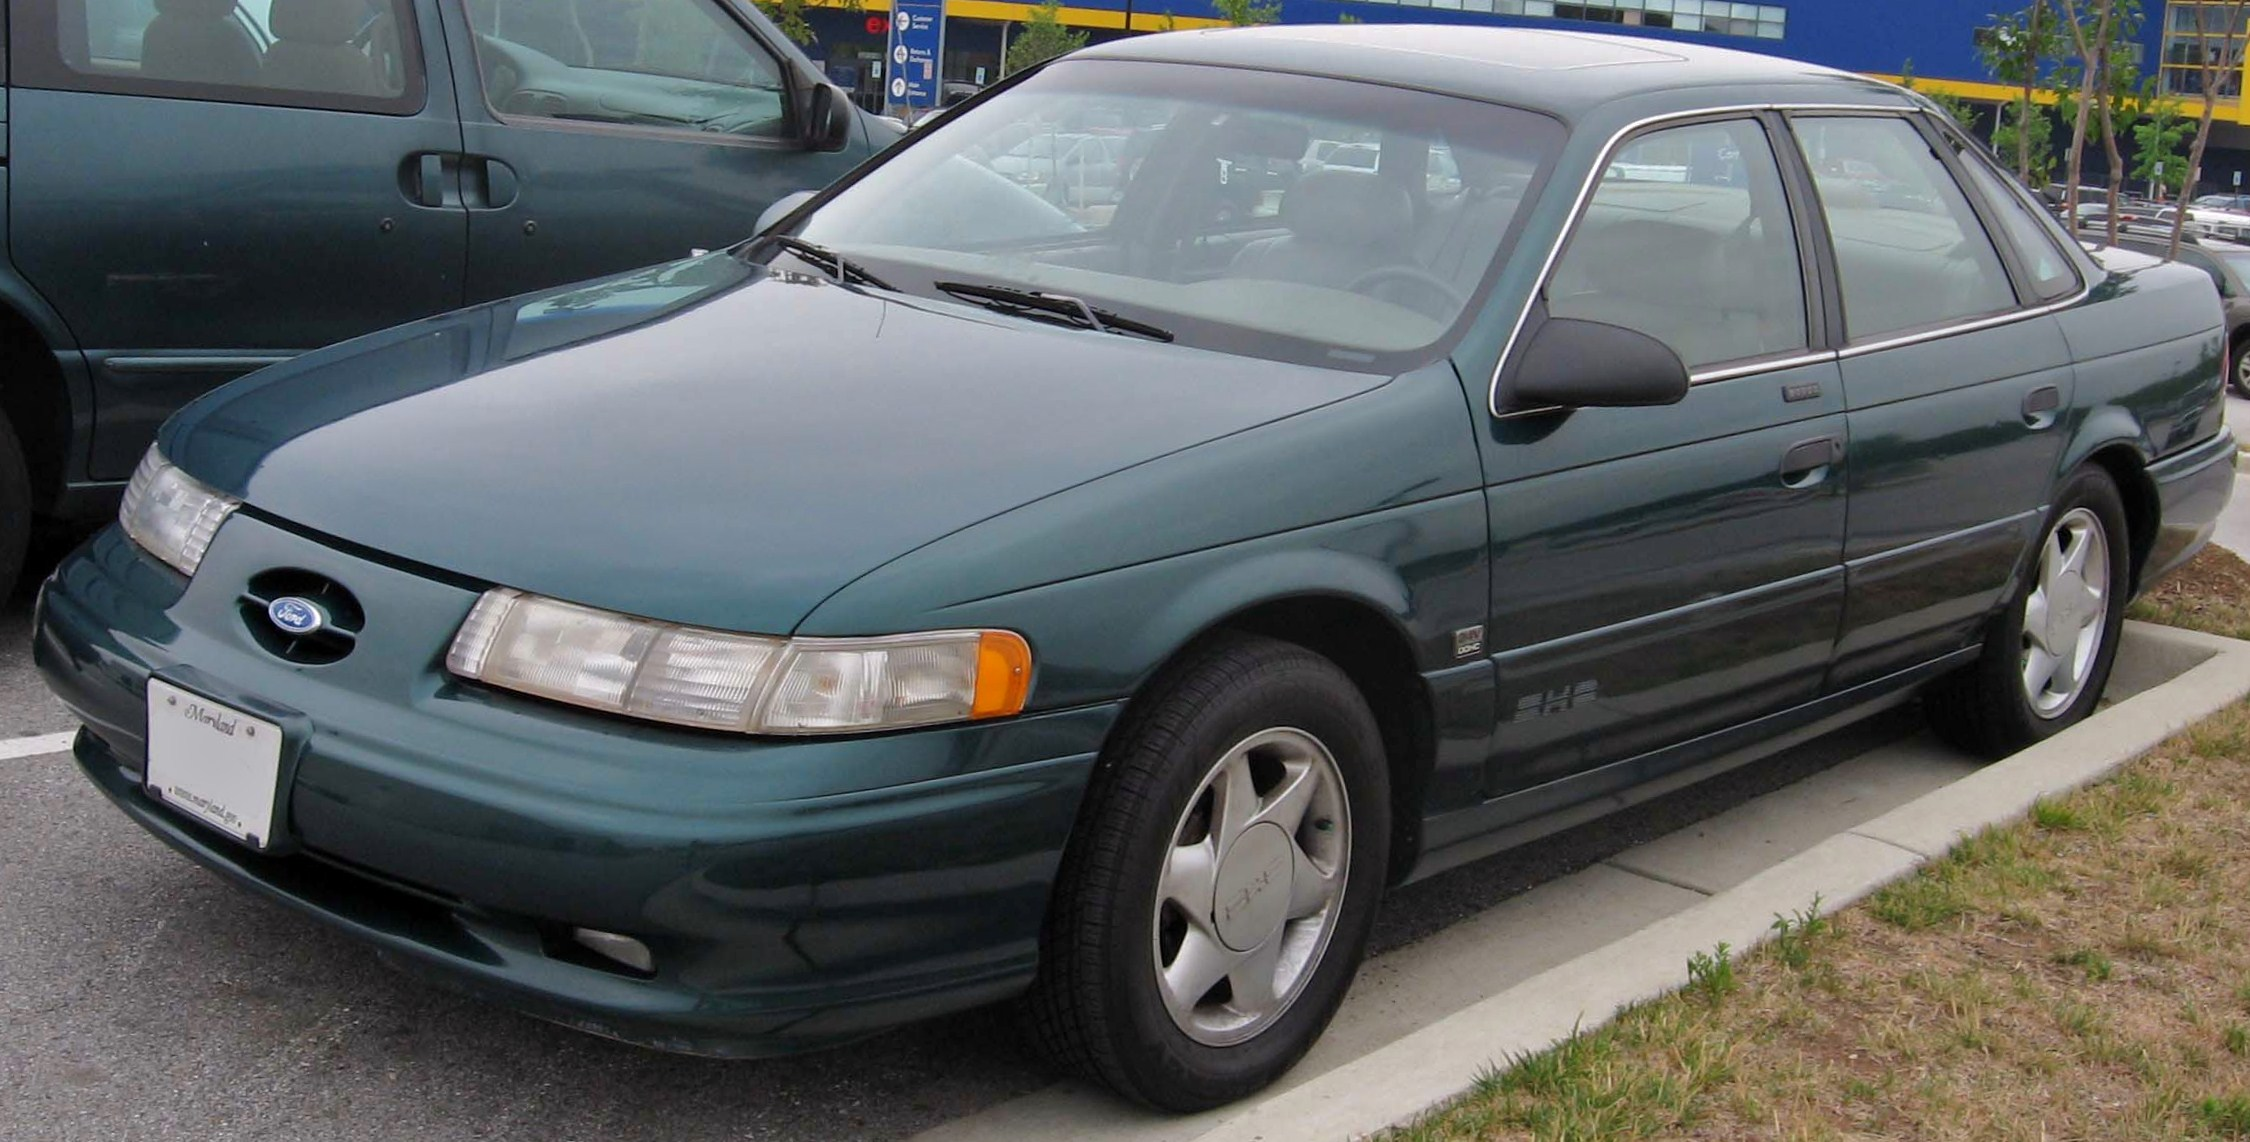 1992 Ford Taurus SHO infomation specifications